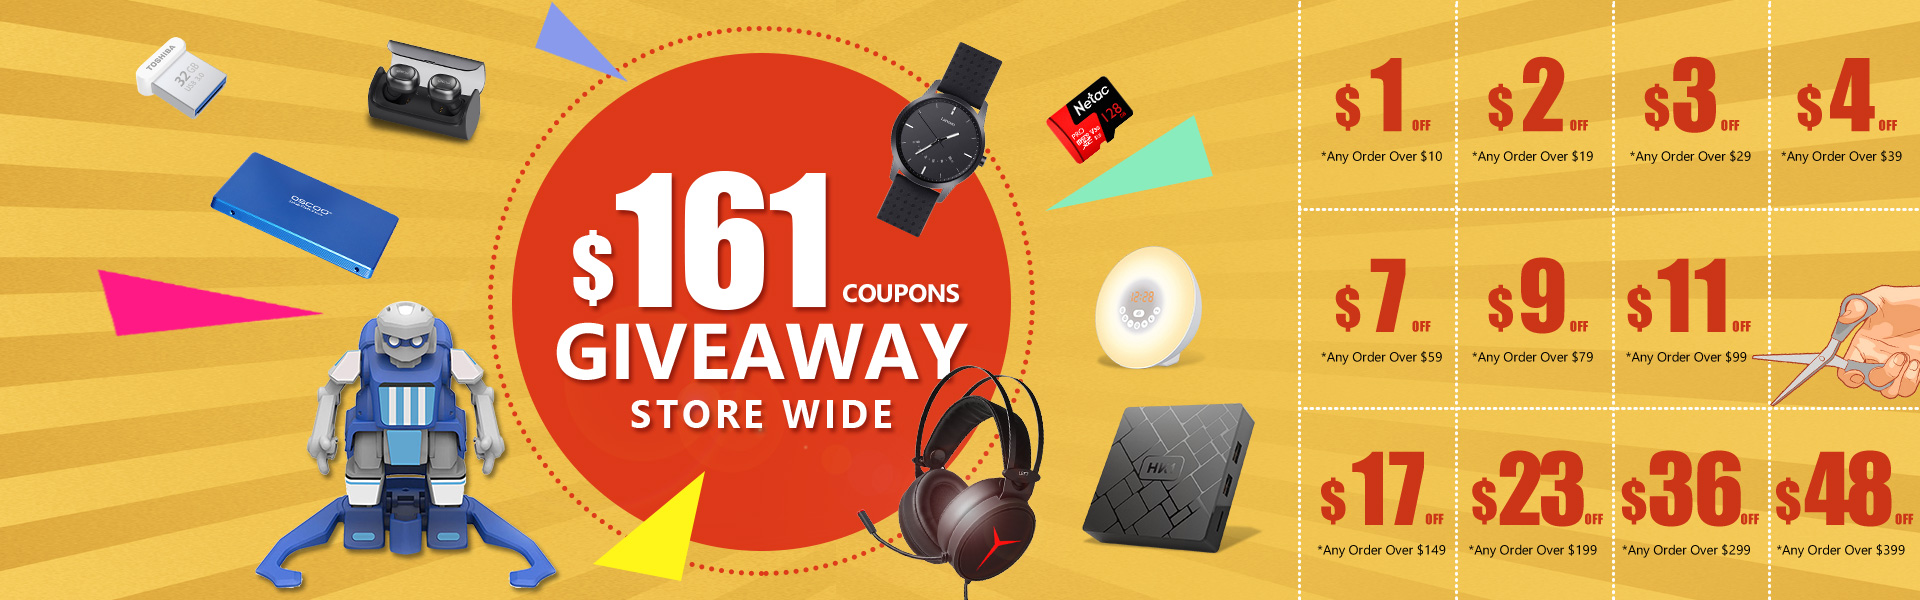 $161 Counpons Giveaway Storewide